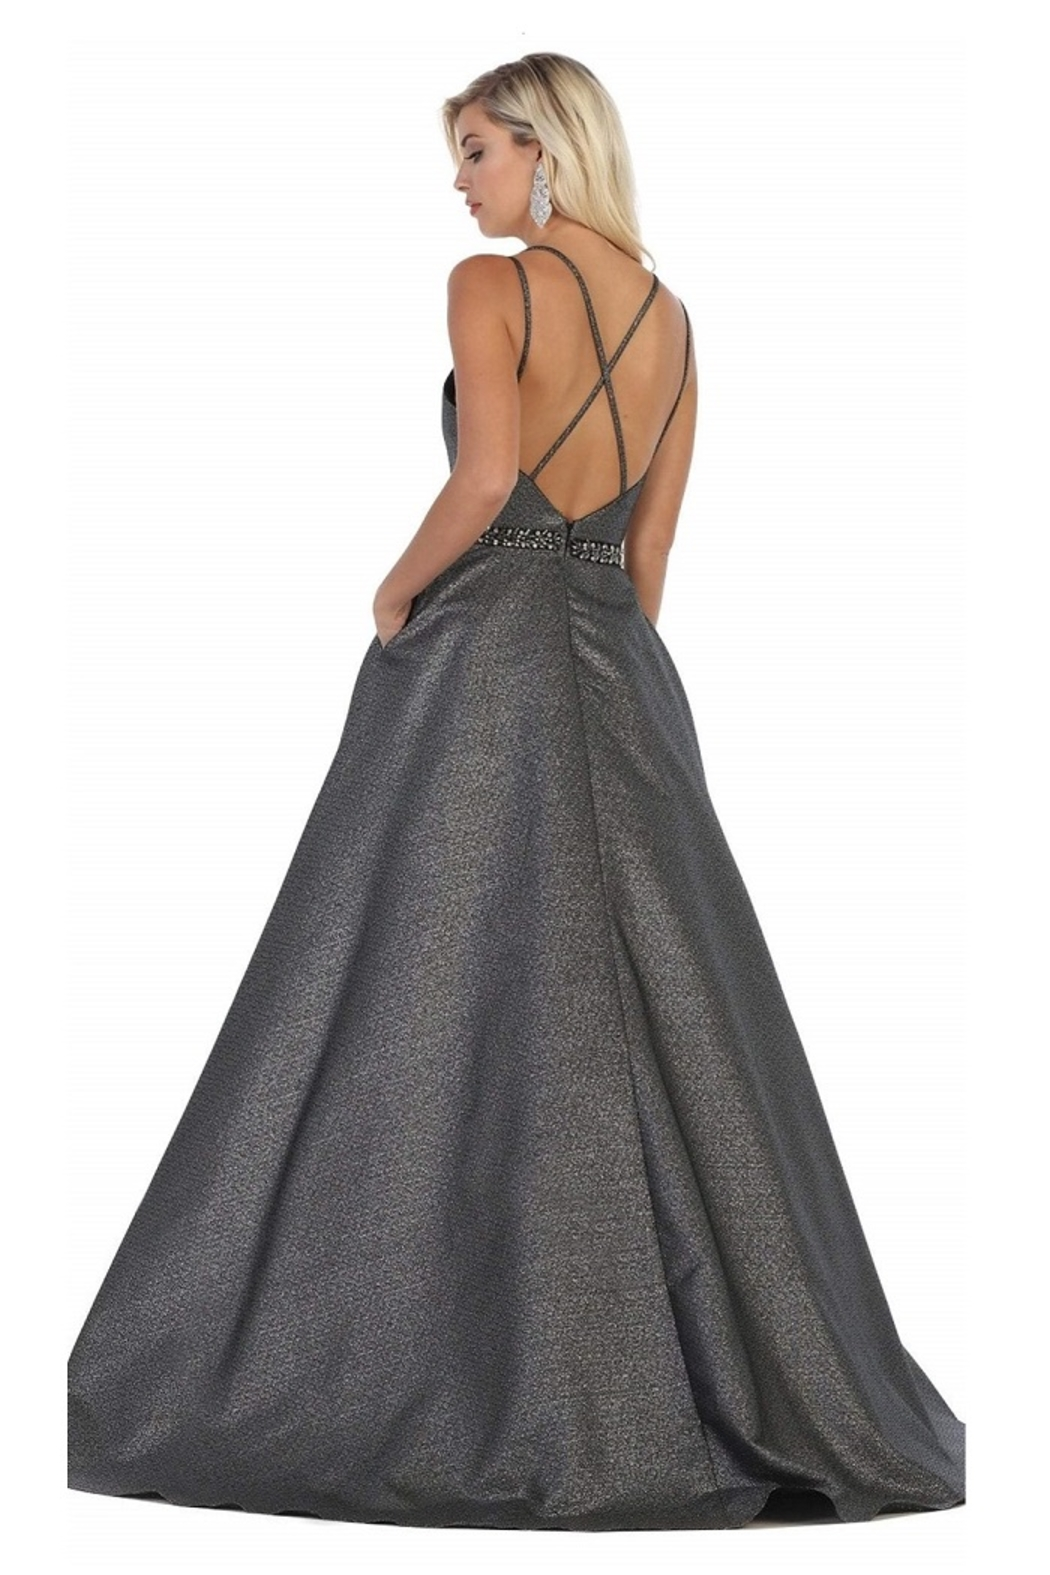 May Queen  Silver & Black Metallic Formal Ball Gown - Front Full Image